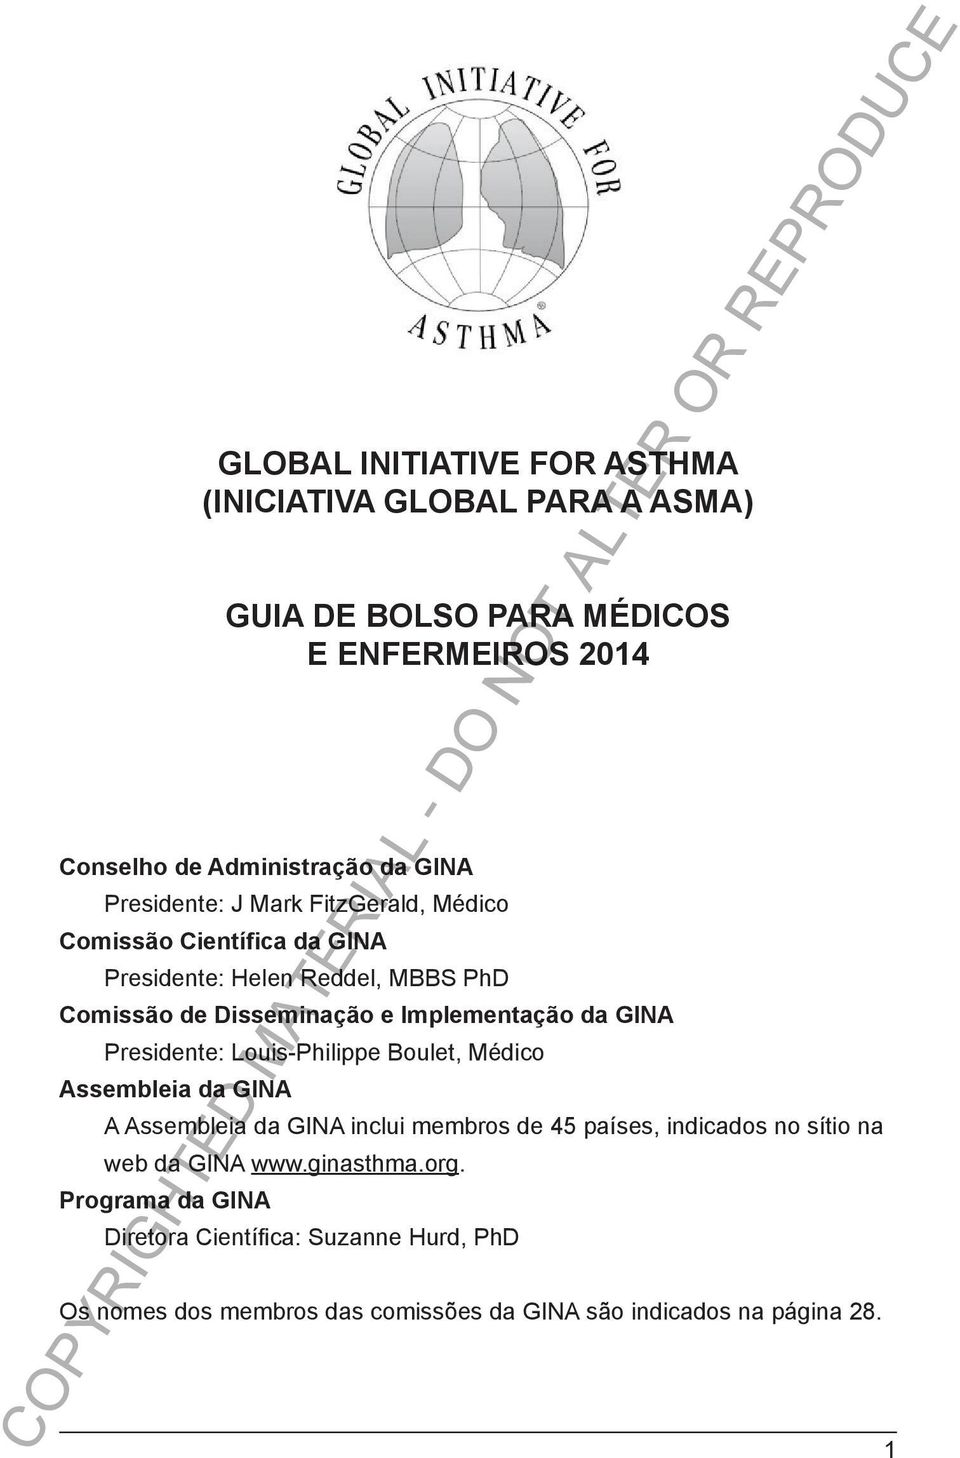 MBBS MBBS PhD PhD Comissão GINA Dissemination de Disseminação and Implementation e Implementação Committee da GINA Presidente: Chair: Louis-Philippe Louis-Philippe Boulet, Boulet, MD Médico